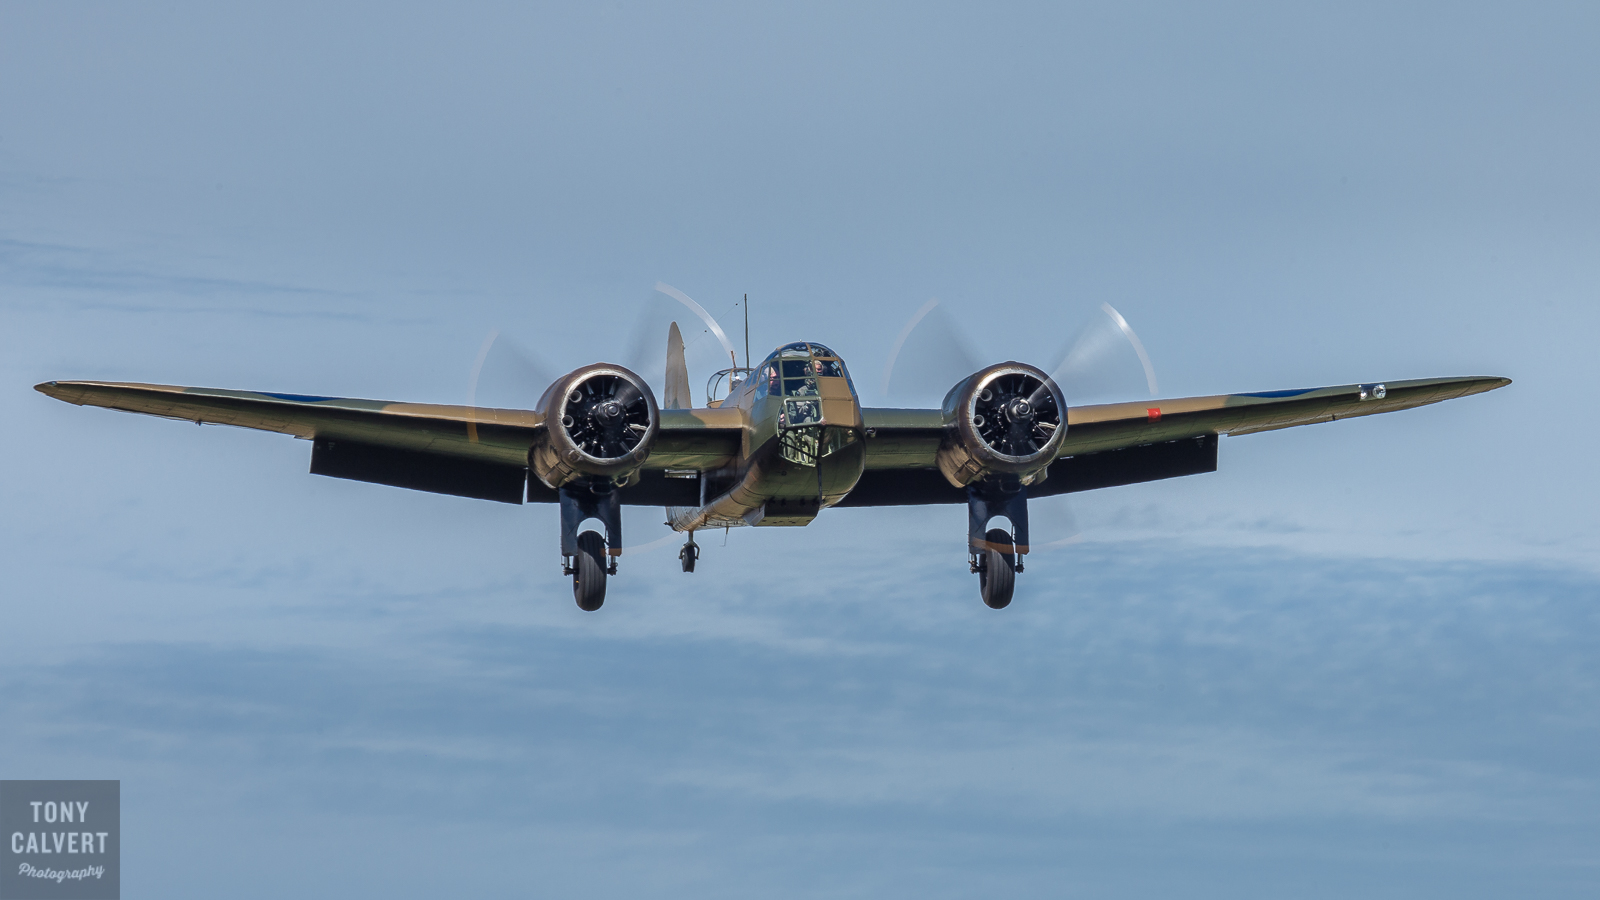 Blenheim on approach